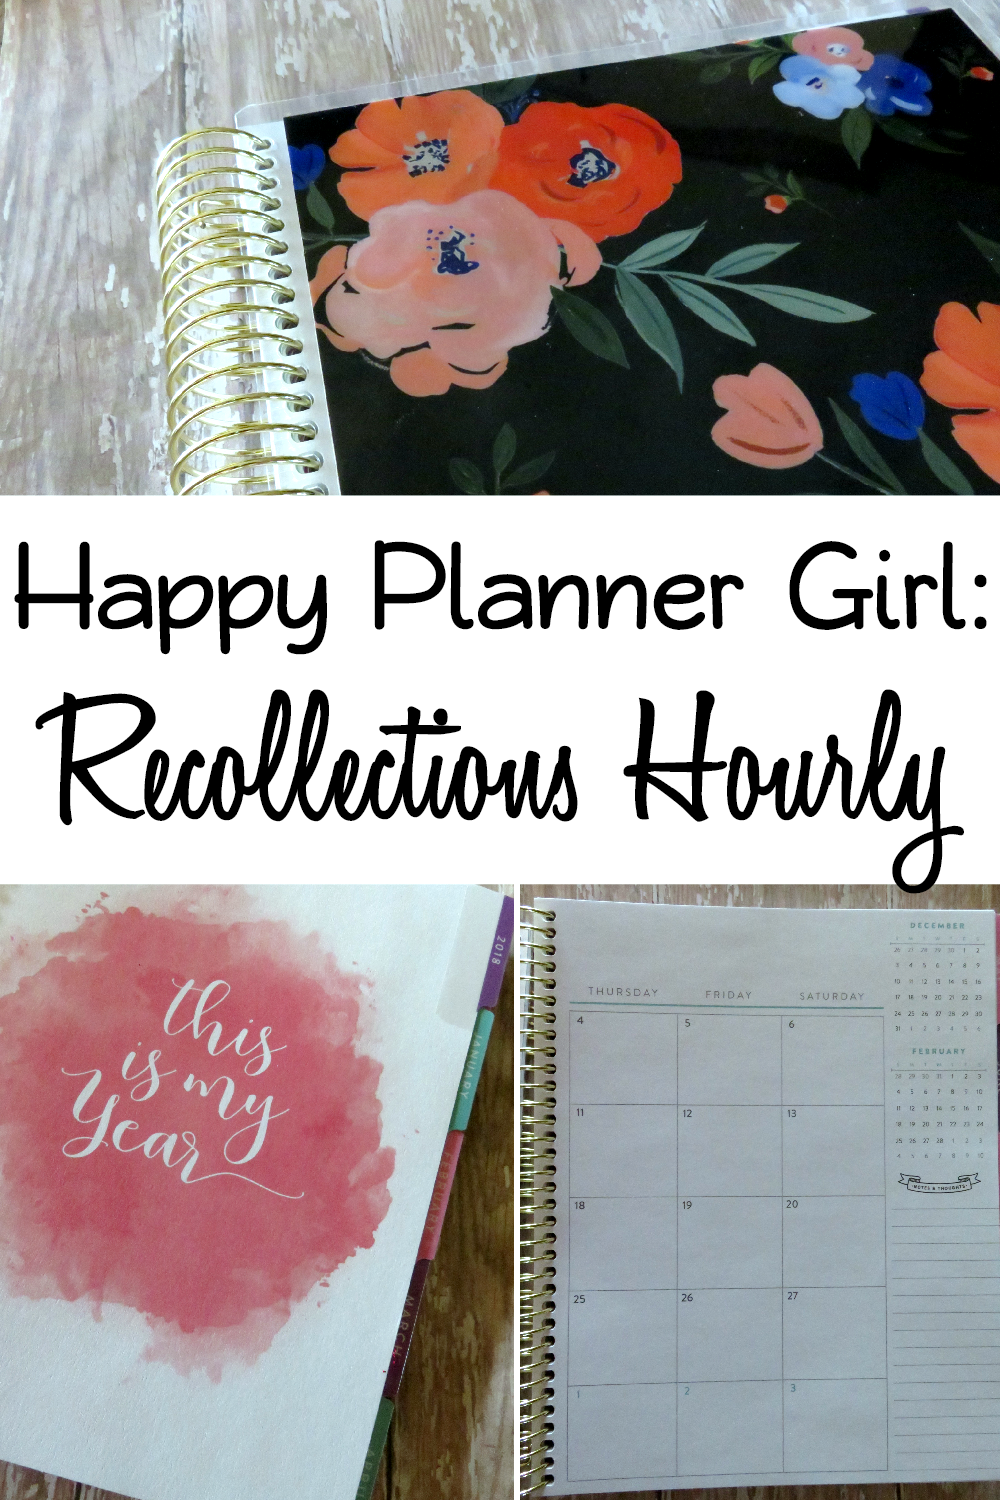 Review of Recollections Hourly Planner